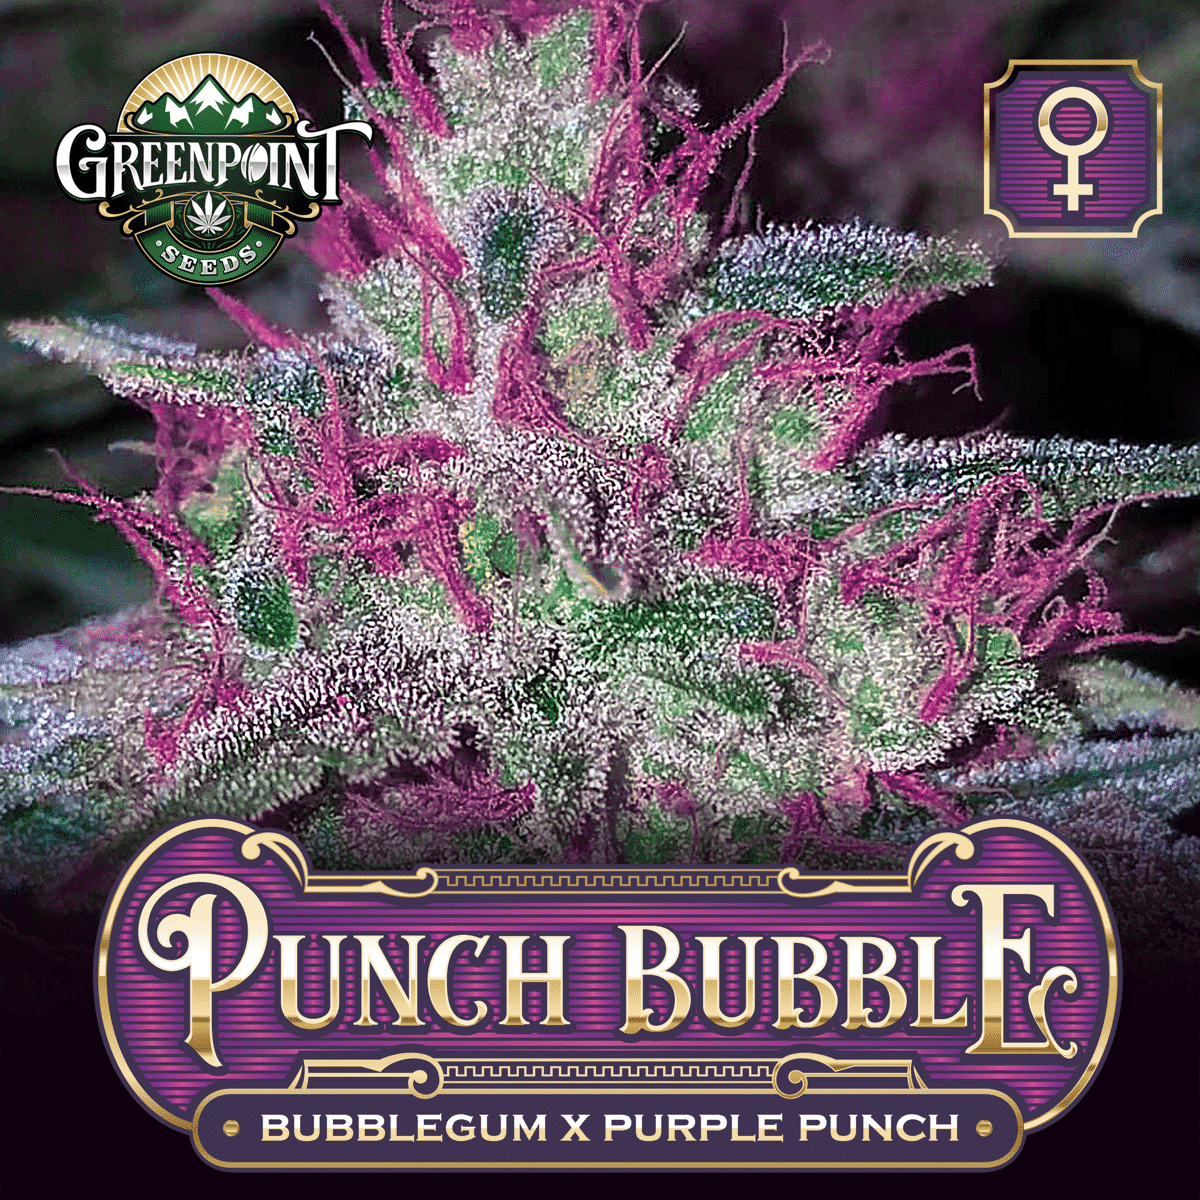 Bubblegum x Purple Punch Feminized Cannabis Seeds - Punch Bubble Strain - Greenpoint Seeds Bank